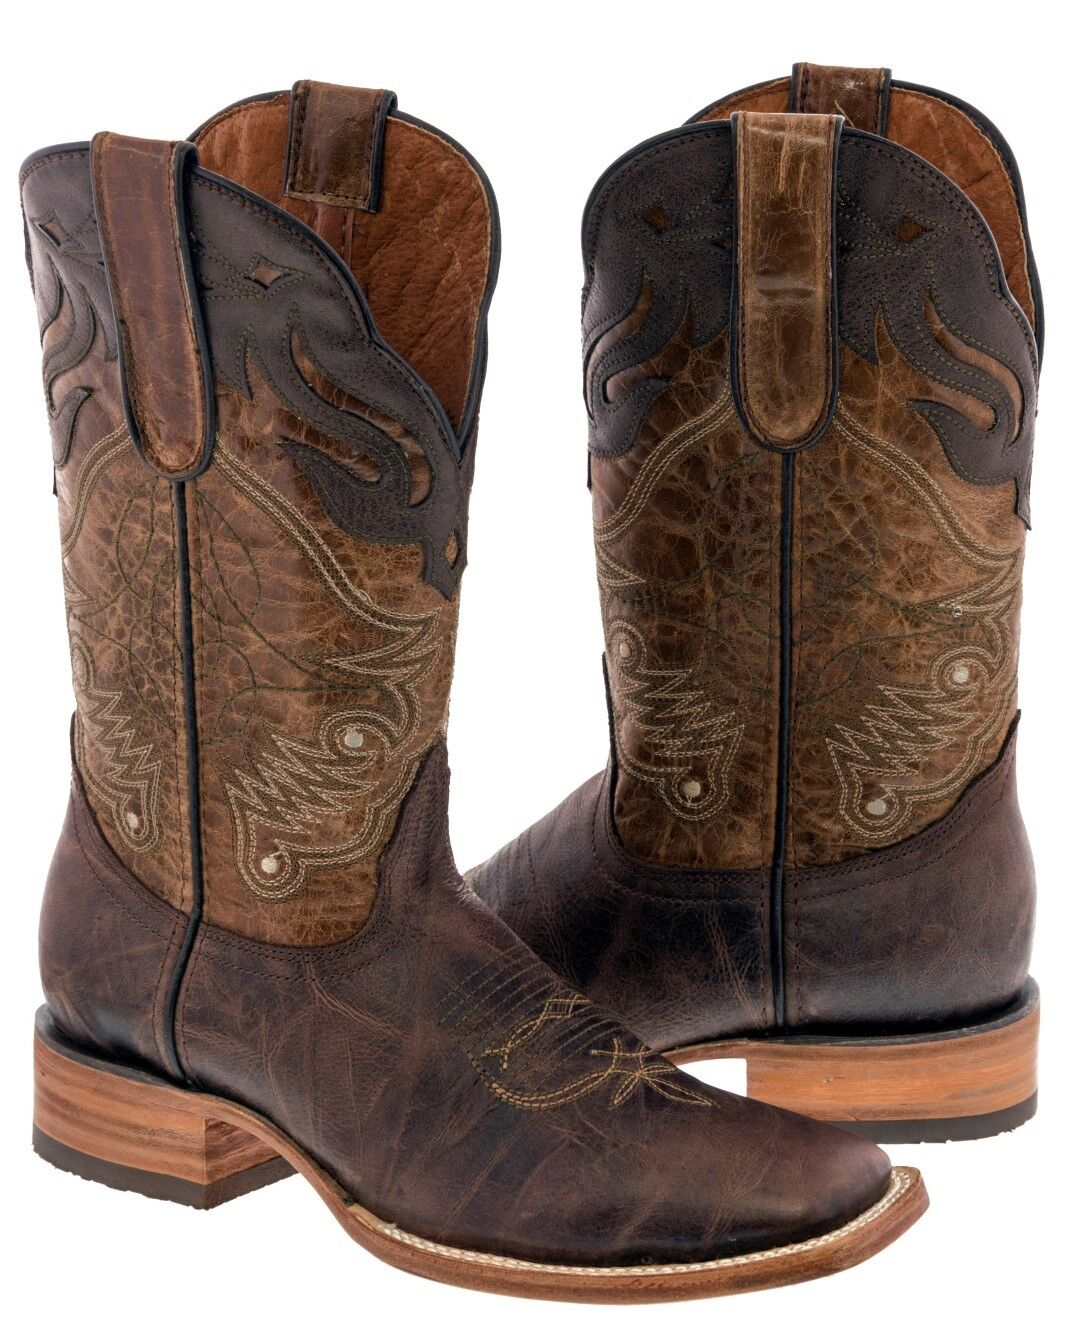 Mens Chedron braun Overlay Genuine Leather Cowboy Stiefel Western Square Toe